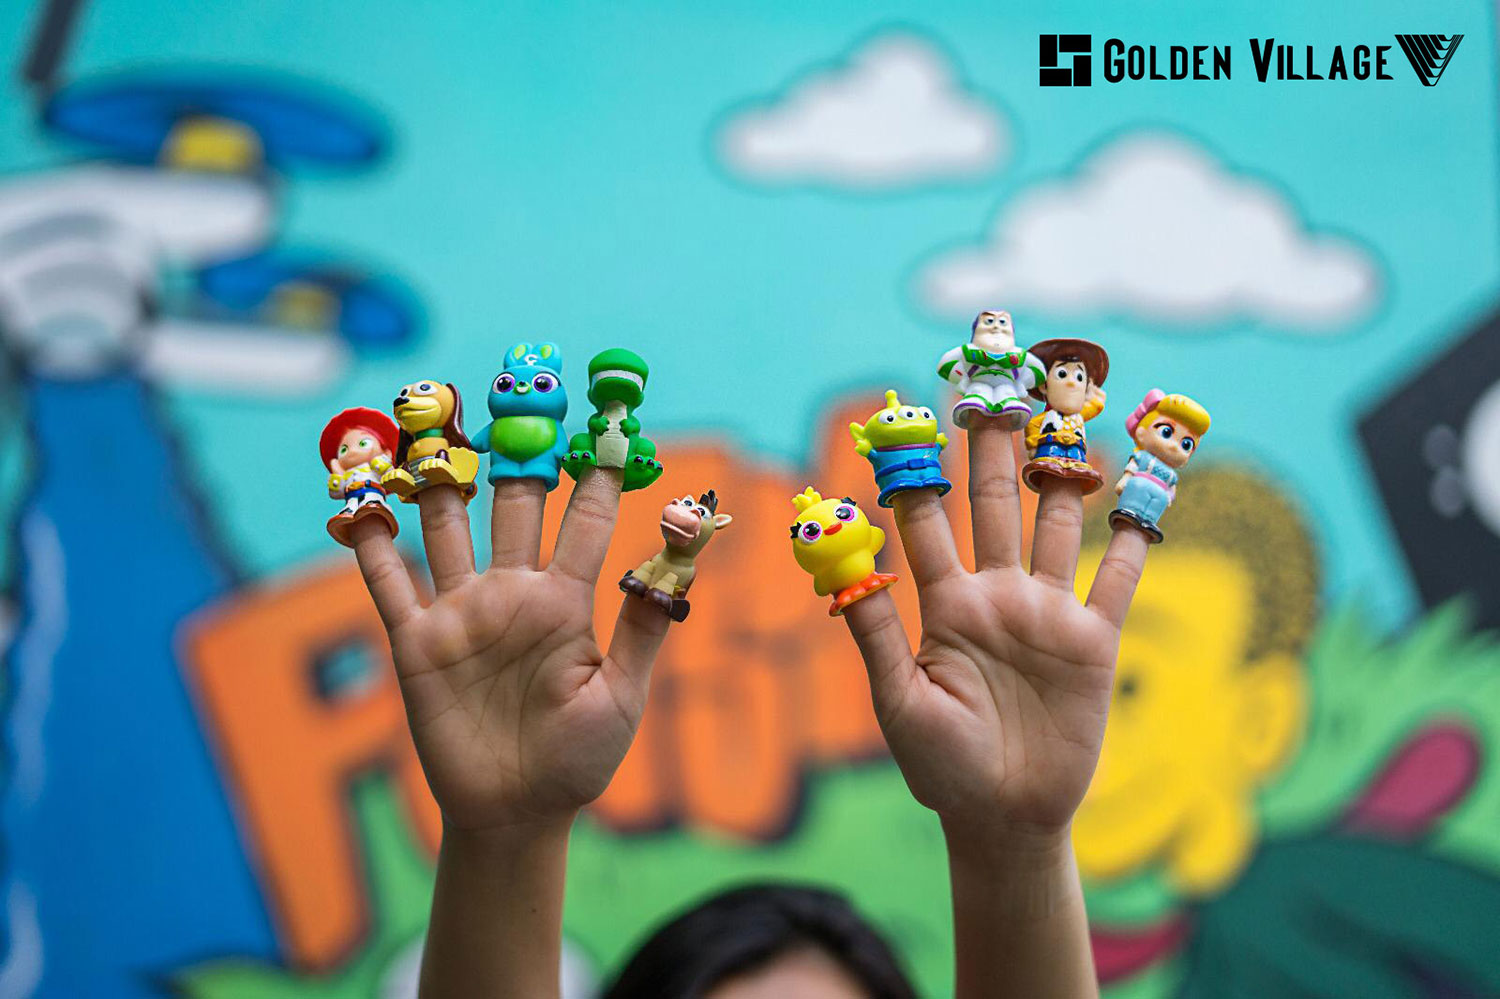 Collect these finger puppet collectibles with Golden Village's Toy Story 4 Exclusive Combo!